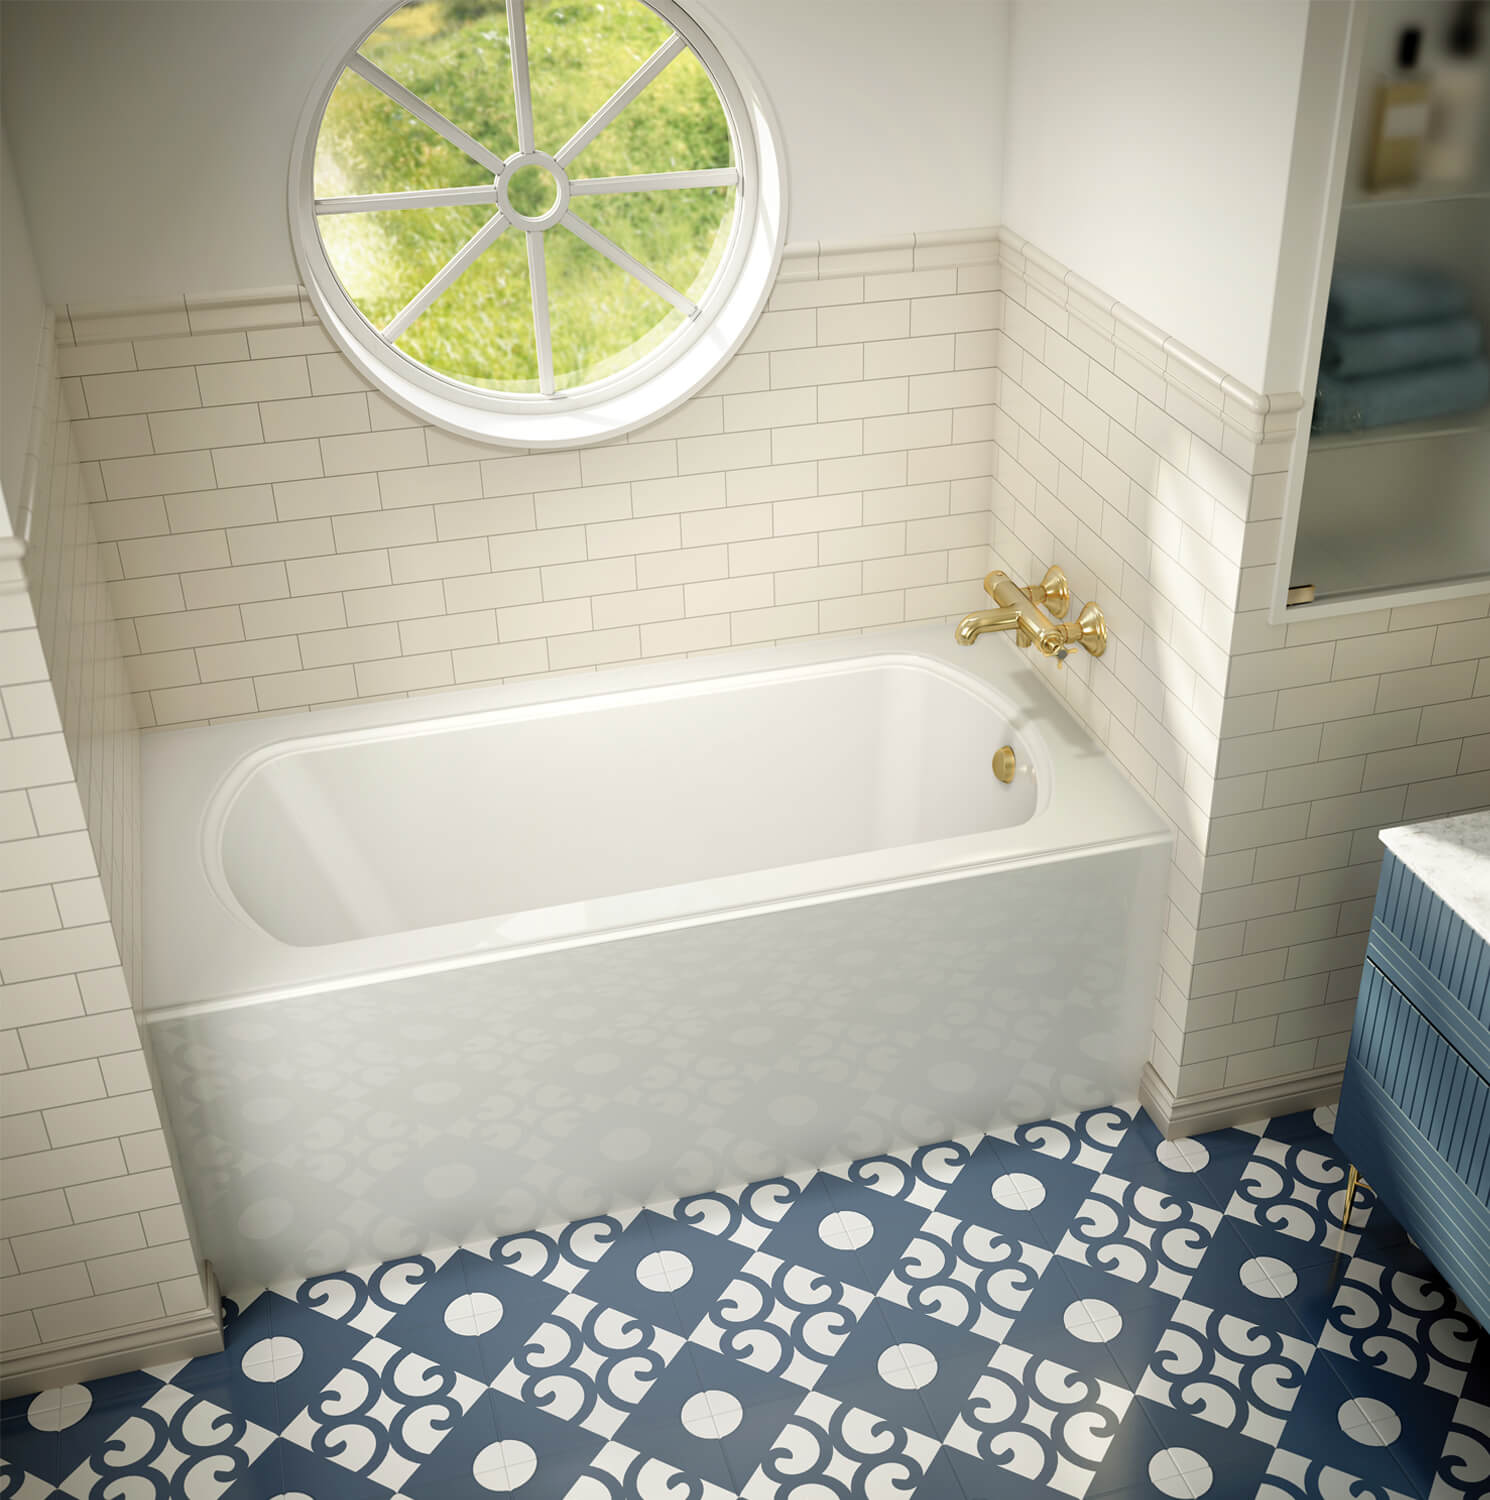 Bainultra Meridian® UNO alcove air jet bathtub for your modern bathroom